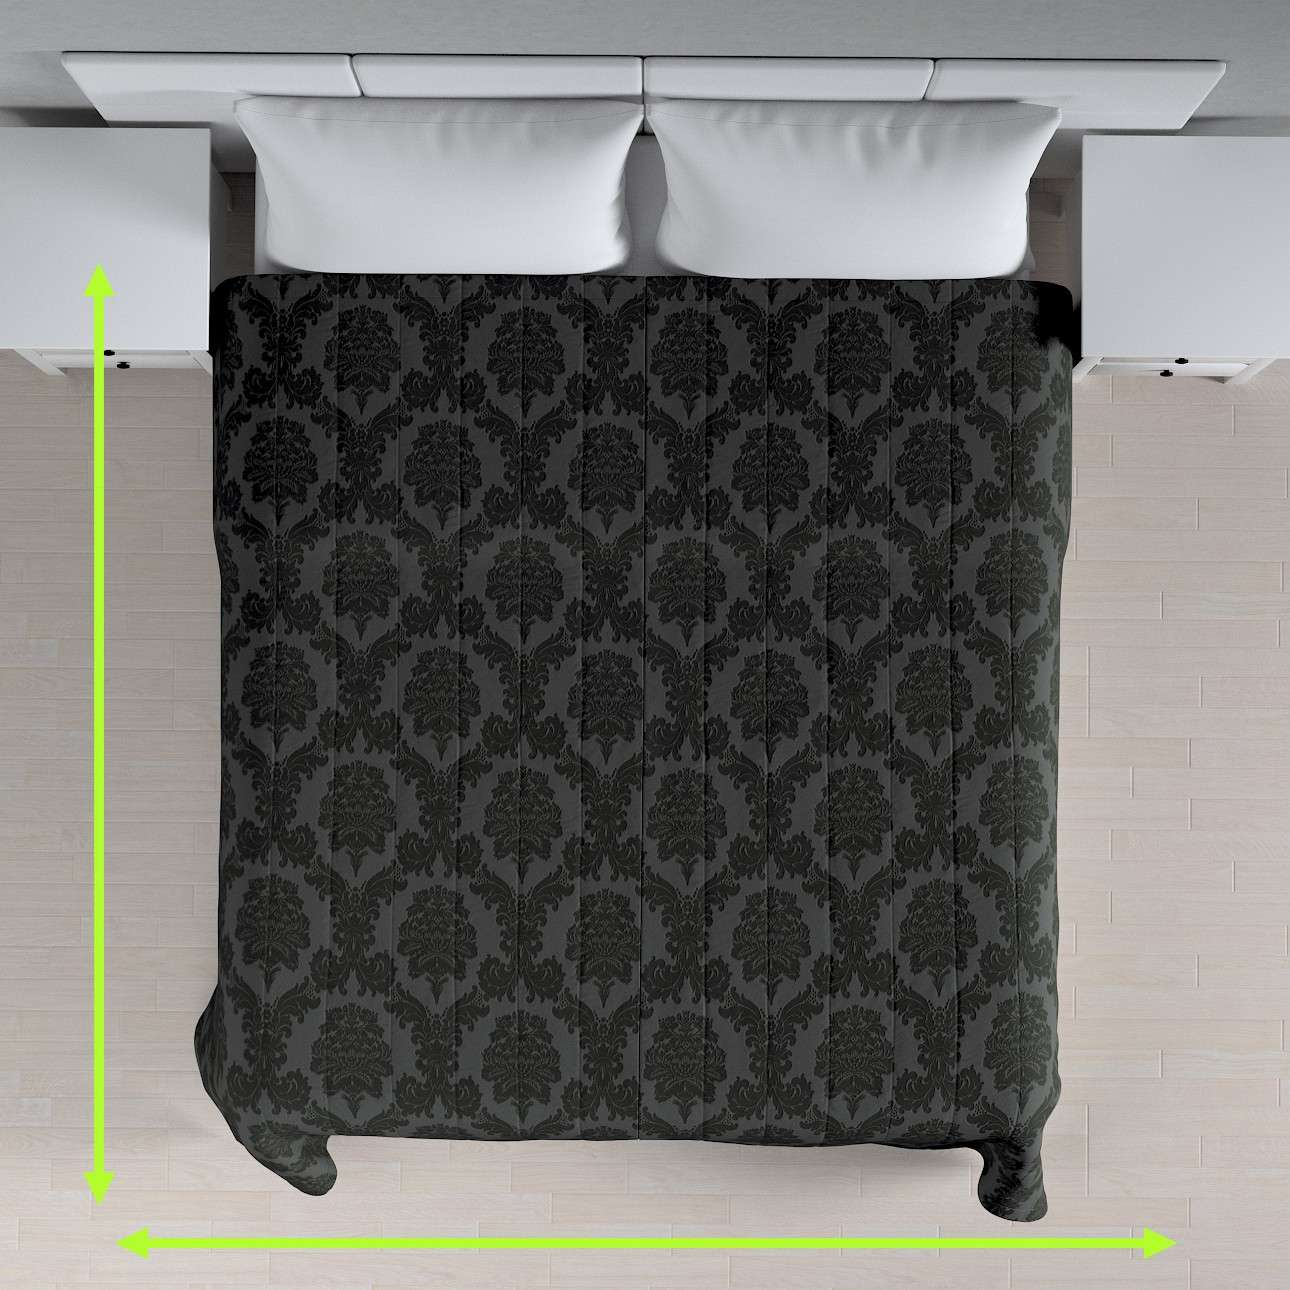 Quilted throw (vertical quilt pattern) in collection Damasco, fabric: 613-32